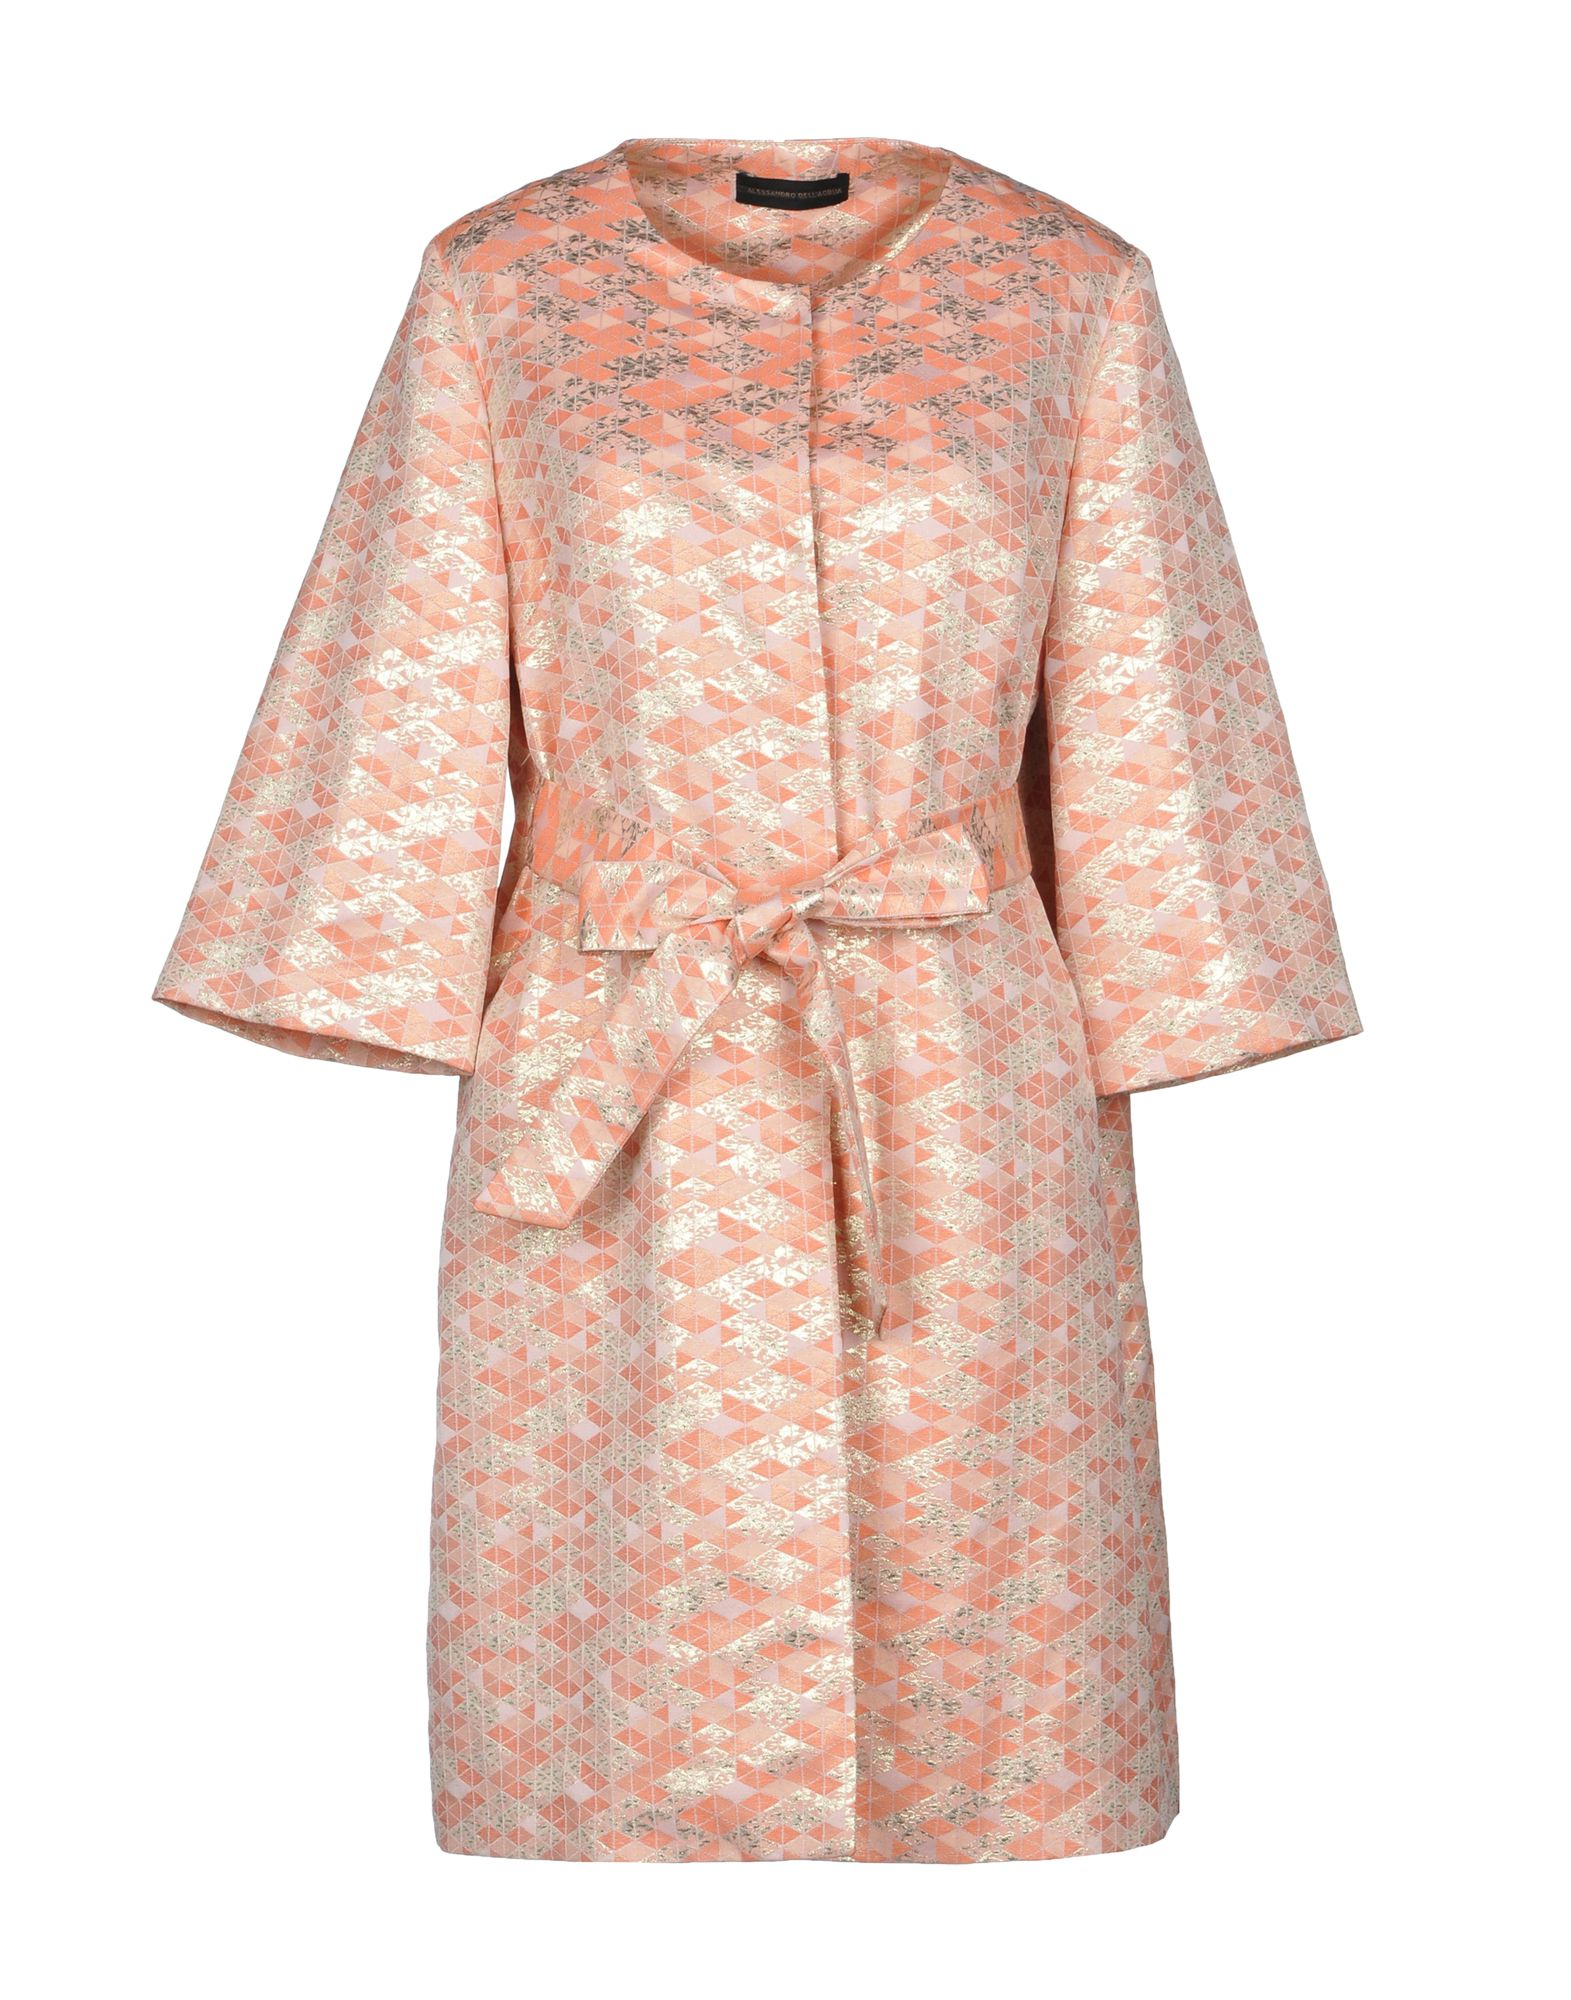 ALESSANDRO DELL'ACQUA Full-Length Jacket in Pale Pink